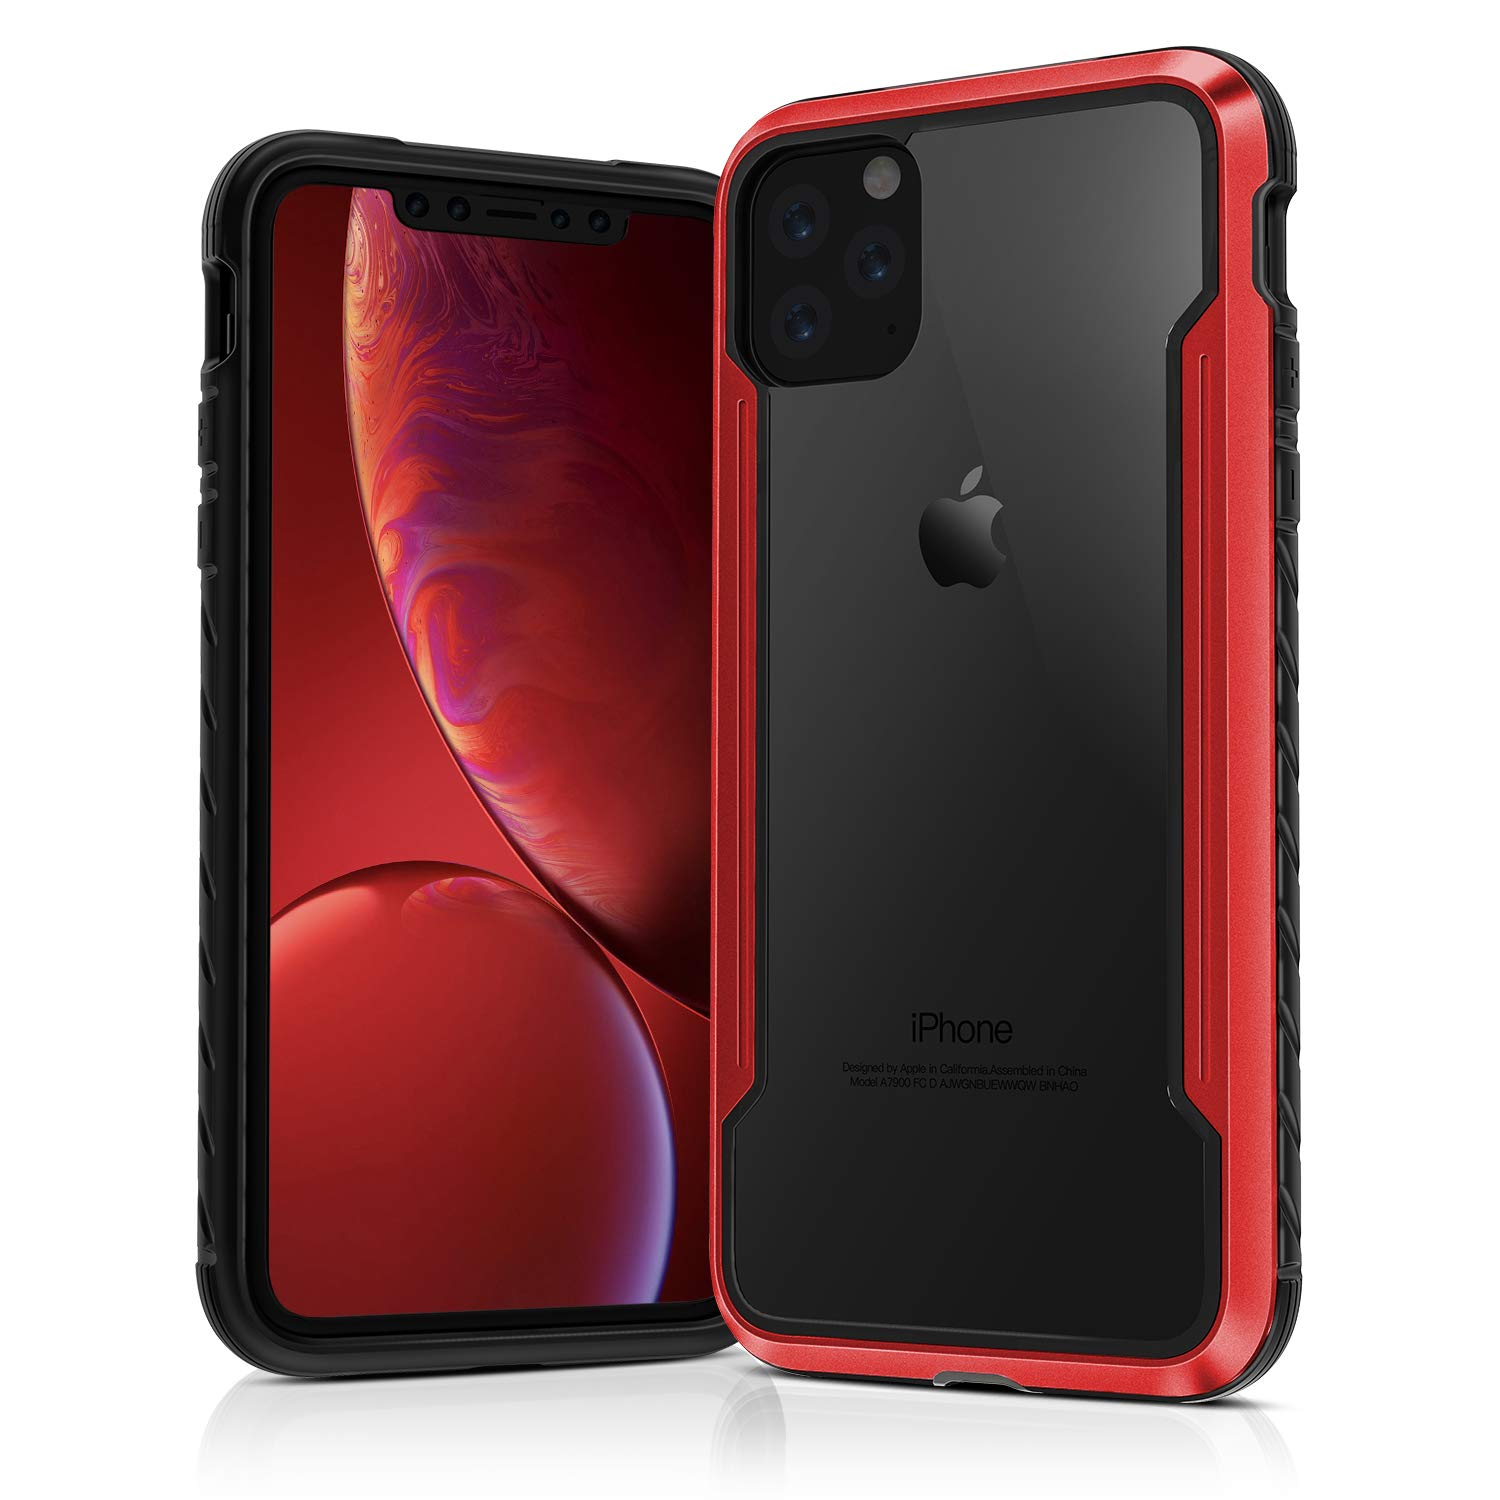 Compatible iPone 11 Pro Rugged Case,ASONRL Full Body Armor Phone Cases,Military Grade Drop Protection Tested,Heavy Duty Anodized Aluminum Frame, TPU and Clear PC Case for iphone11 Pro (Red)